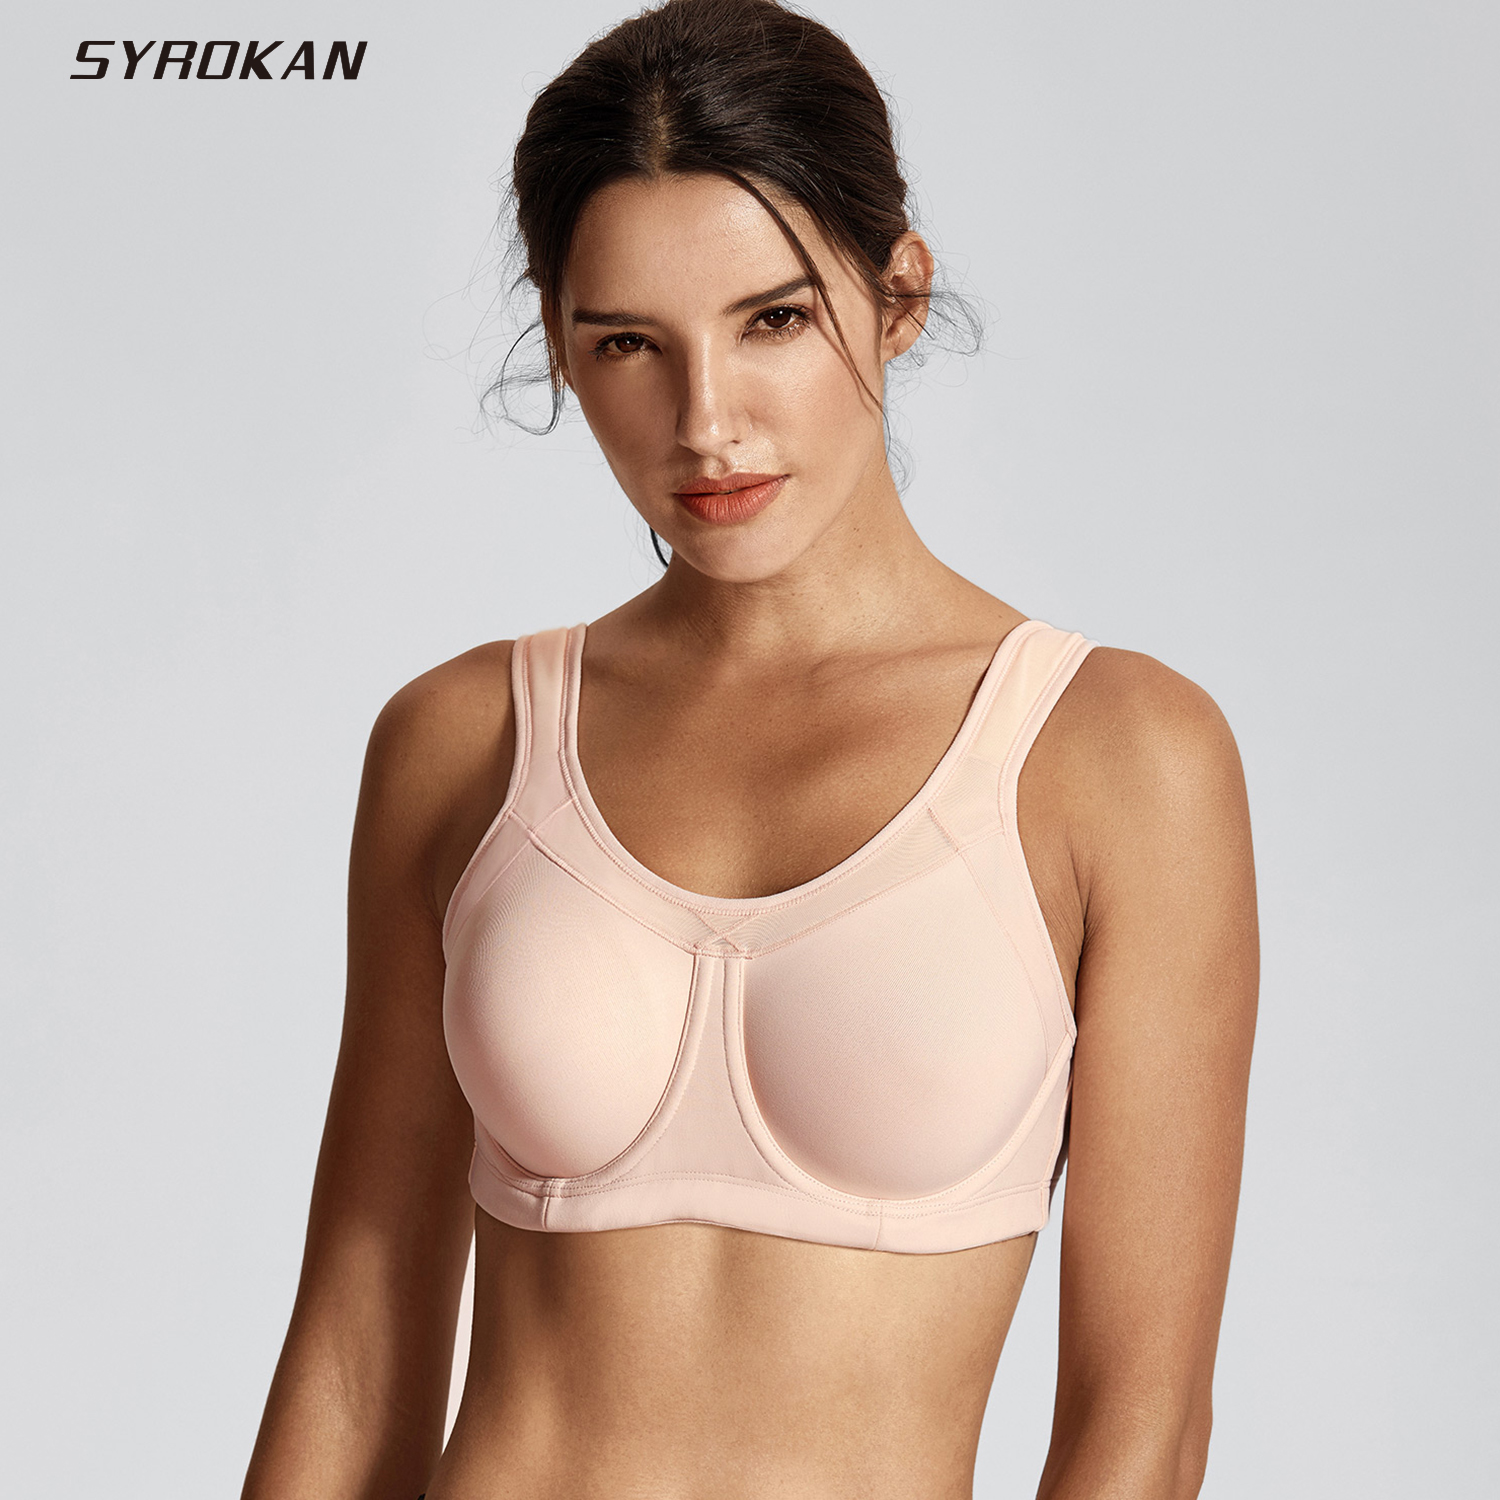 SYROKAN Women's High Impact Full Coverage Bounce Control Underwire Workout Sports Bra high impact perkins collar cut out zip design sports bra in white